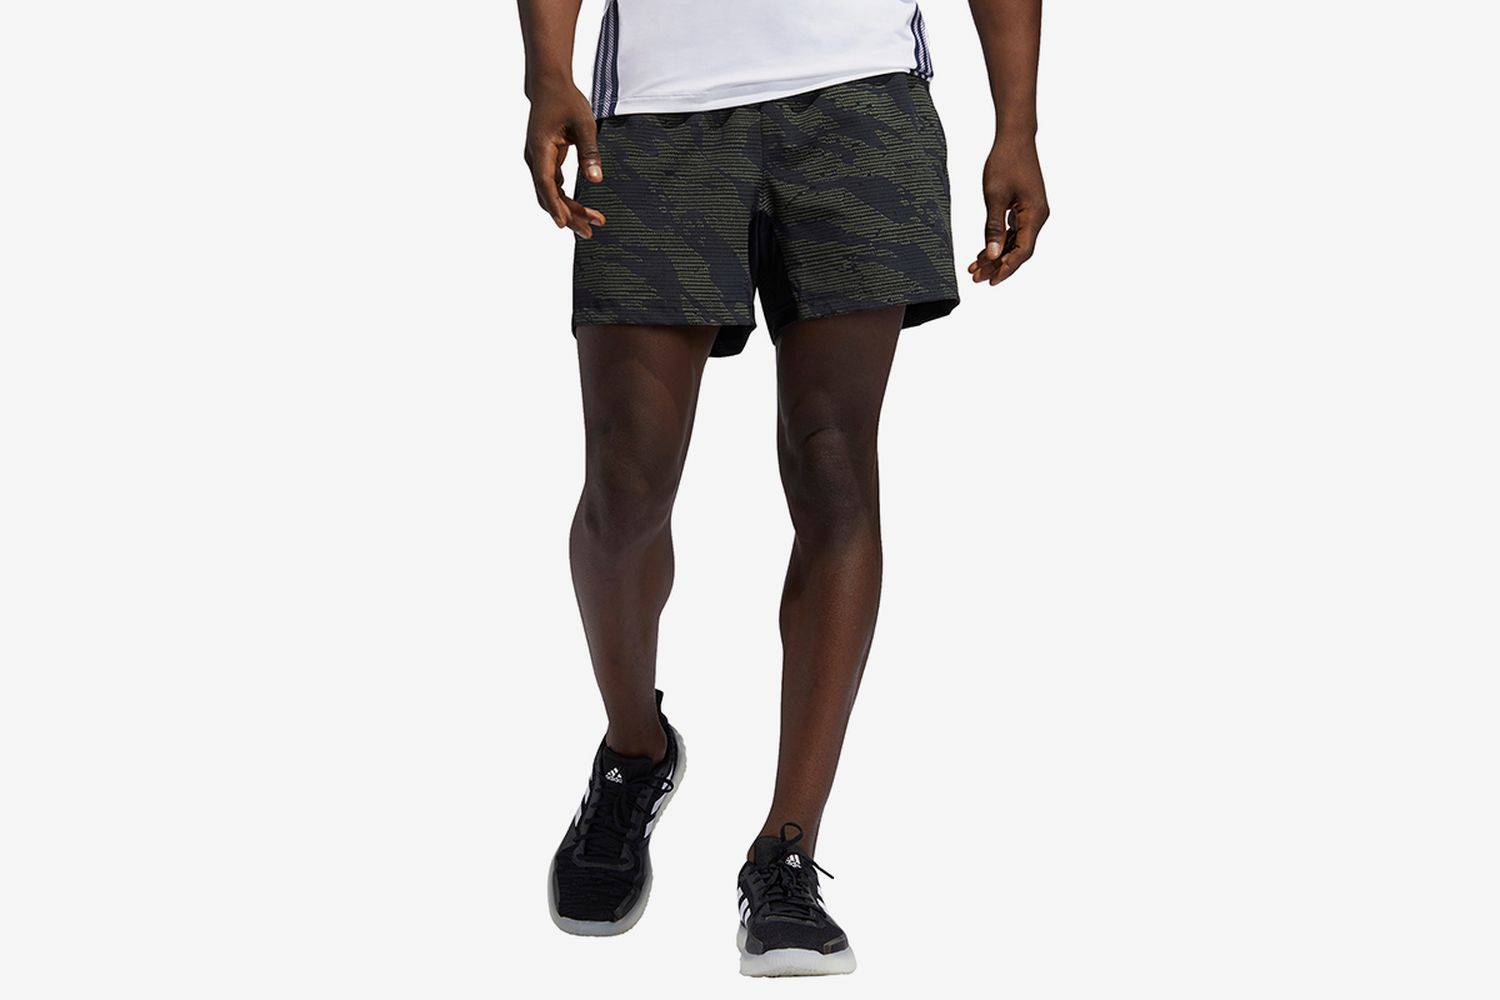 Tky Urban Camo Water Repellent Shorts